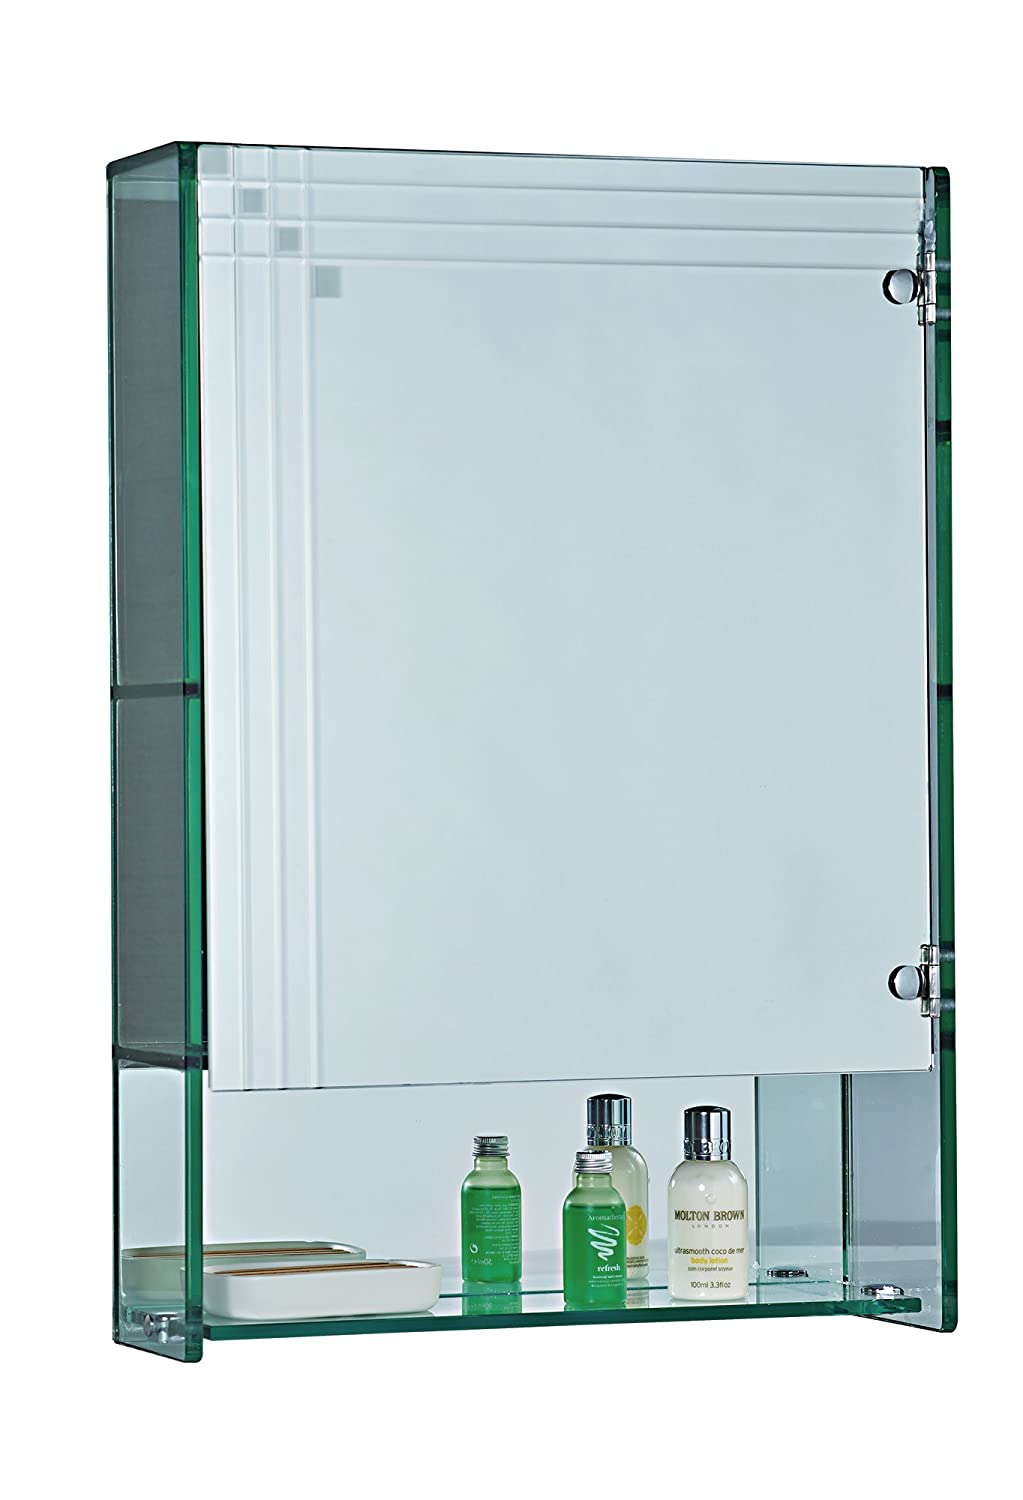 Showerdrape Marratimo Glass Bathroom Cabinet Mirrored Door: Amazon ...